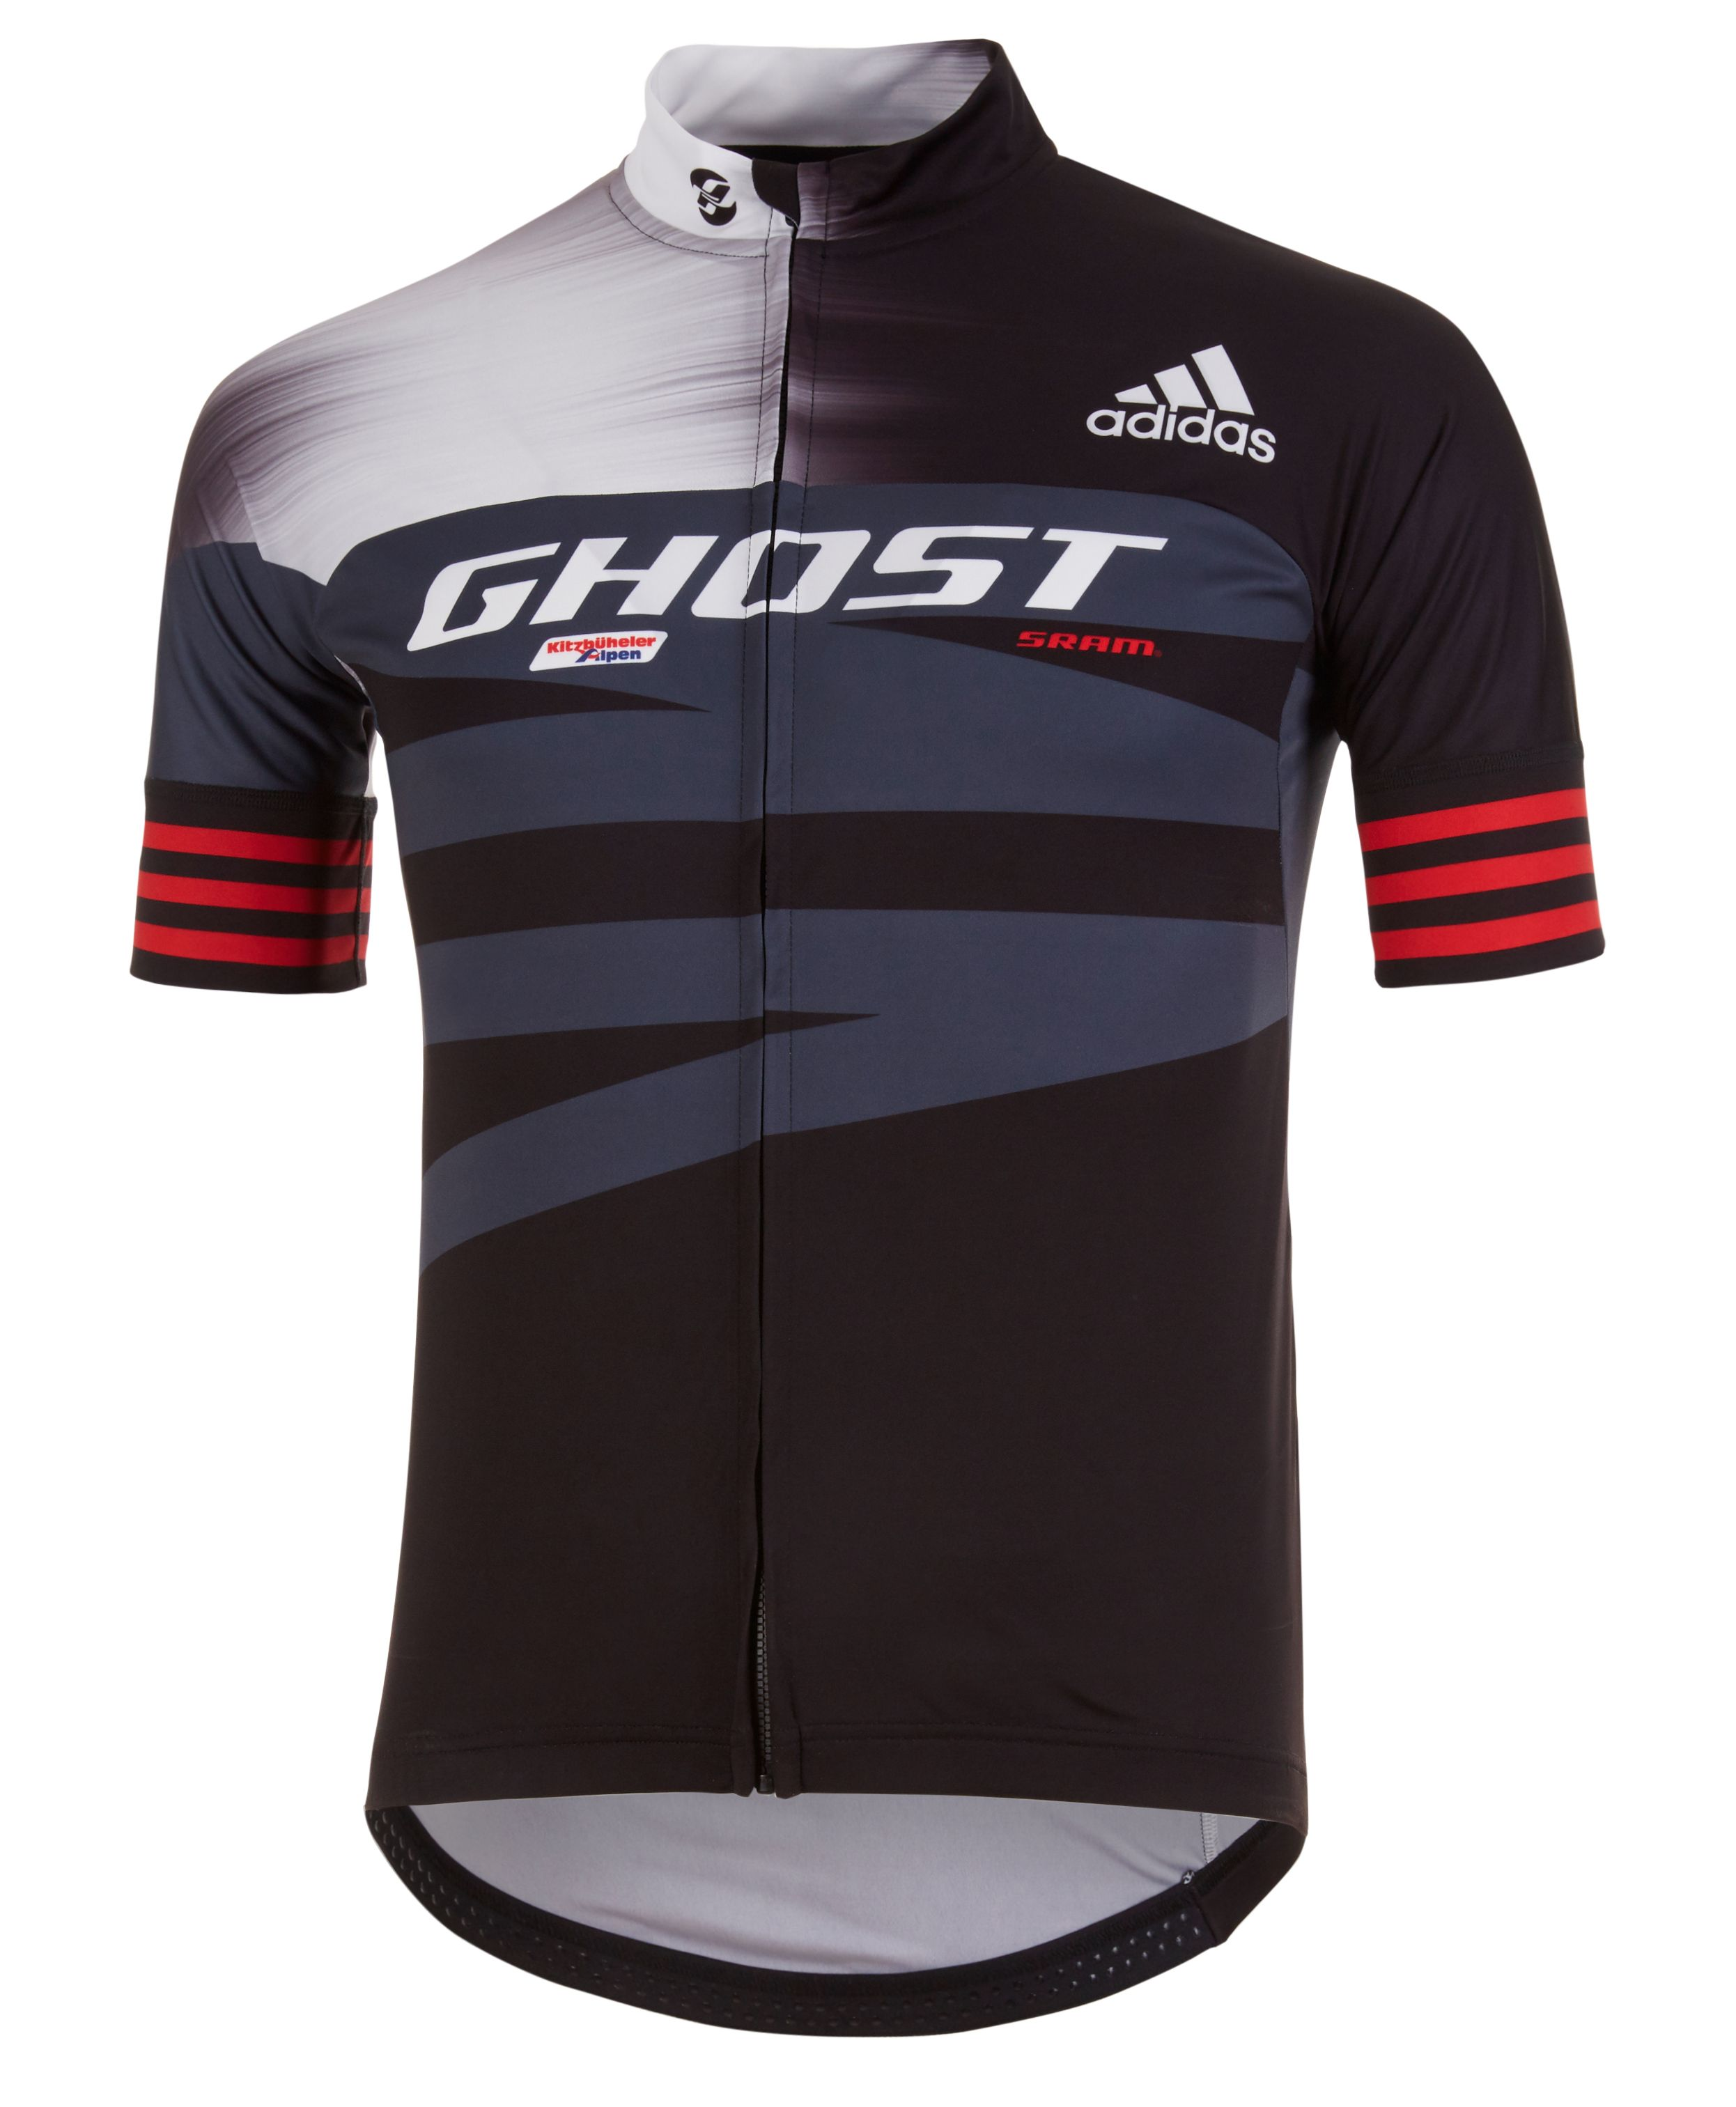 buy online 5f28a 618c7 GHOST Adidas Replica Factory Racing Team Jersey Trikot short black / white  / red